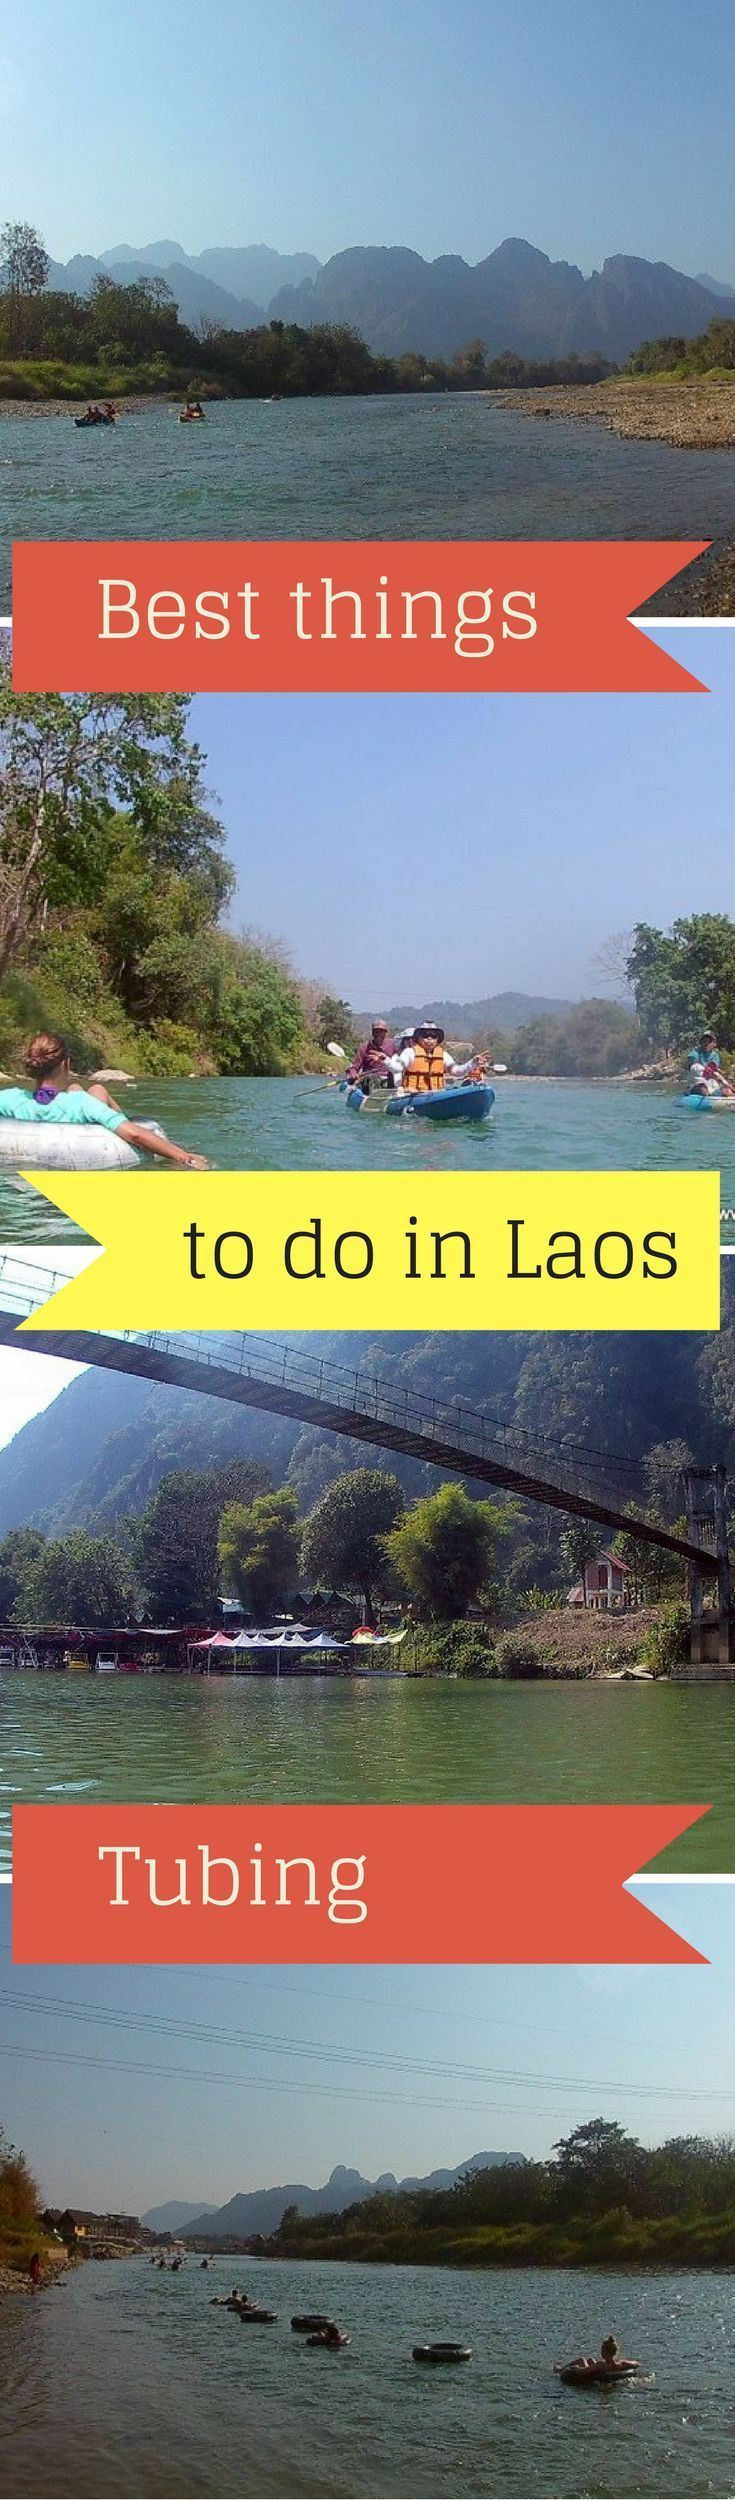 What is tubing? | Best activities to do in Vang Vieng | Visit Laos | tubing in Vang Vieng | Things to do in Laos | Best activities in Laos | Go to Vang Vieng | travel to vang vieng | visit vang vieng | Visit Laos | what to do in Vang Vieng | Laos Travel Guide | How to go tubing | Tubing